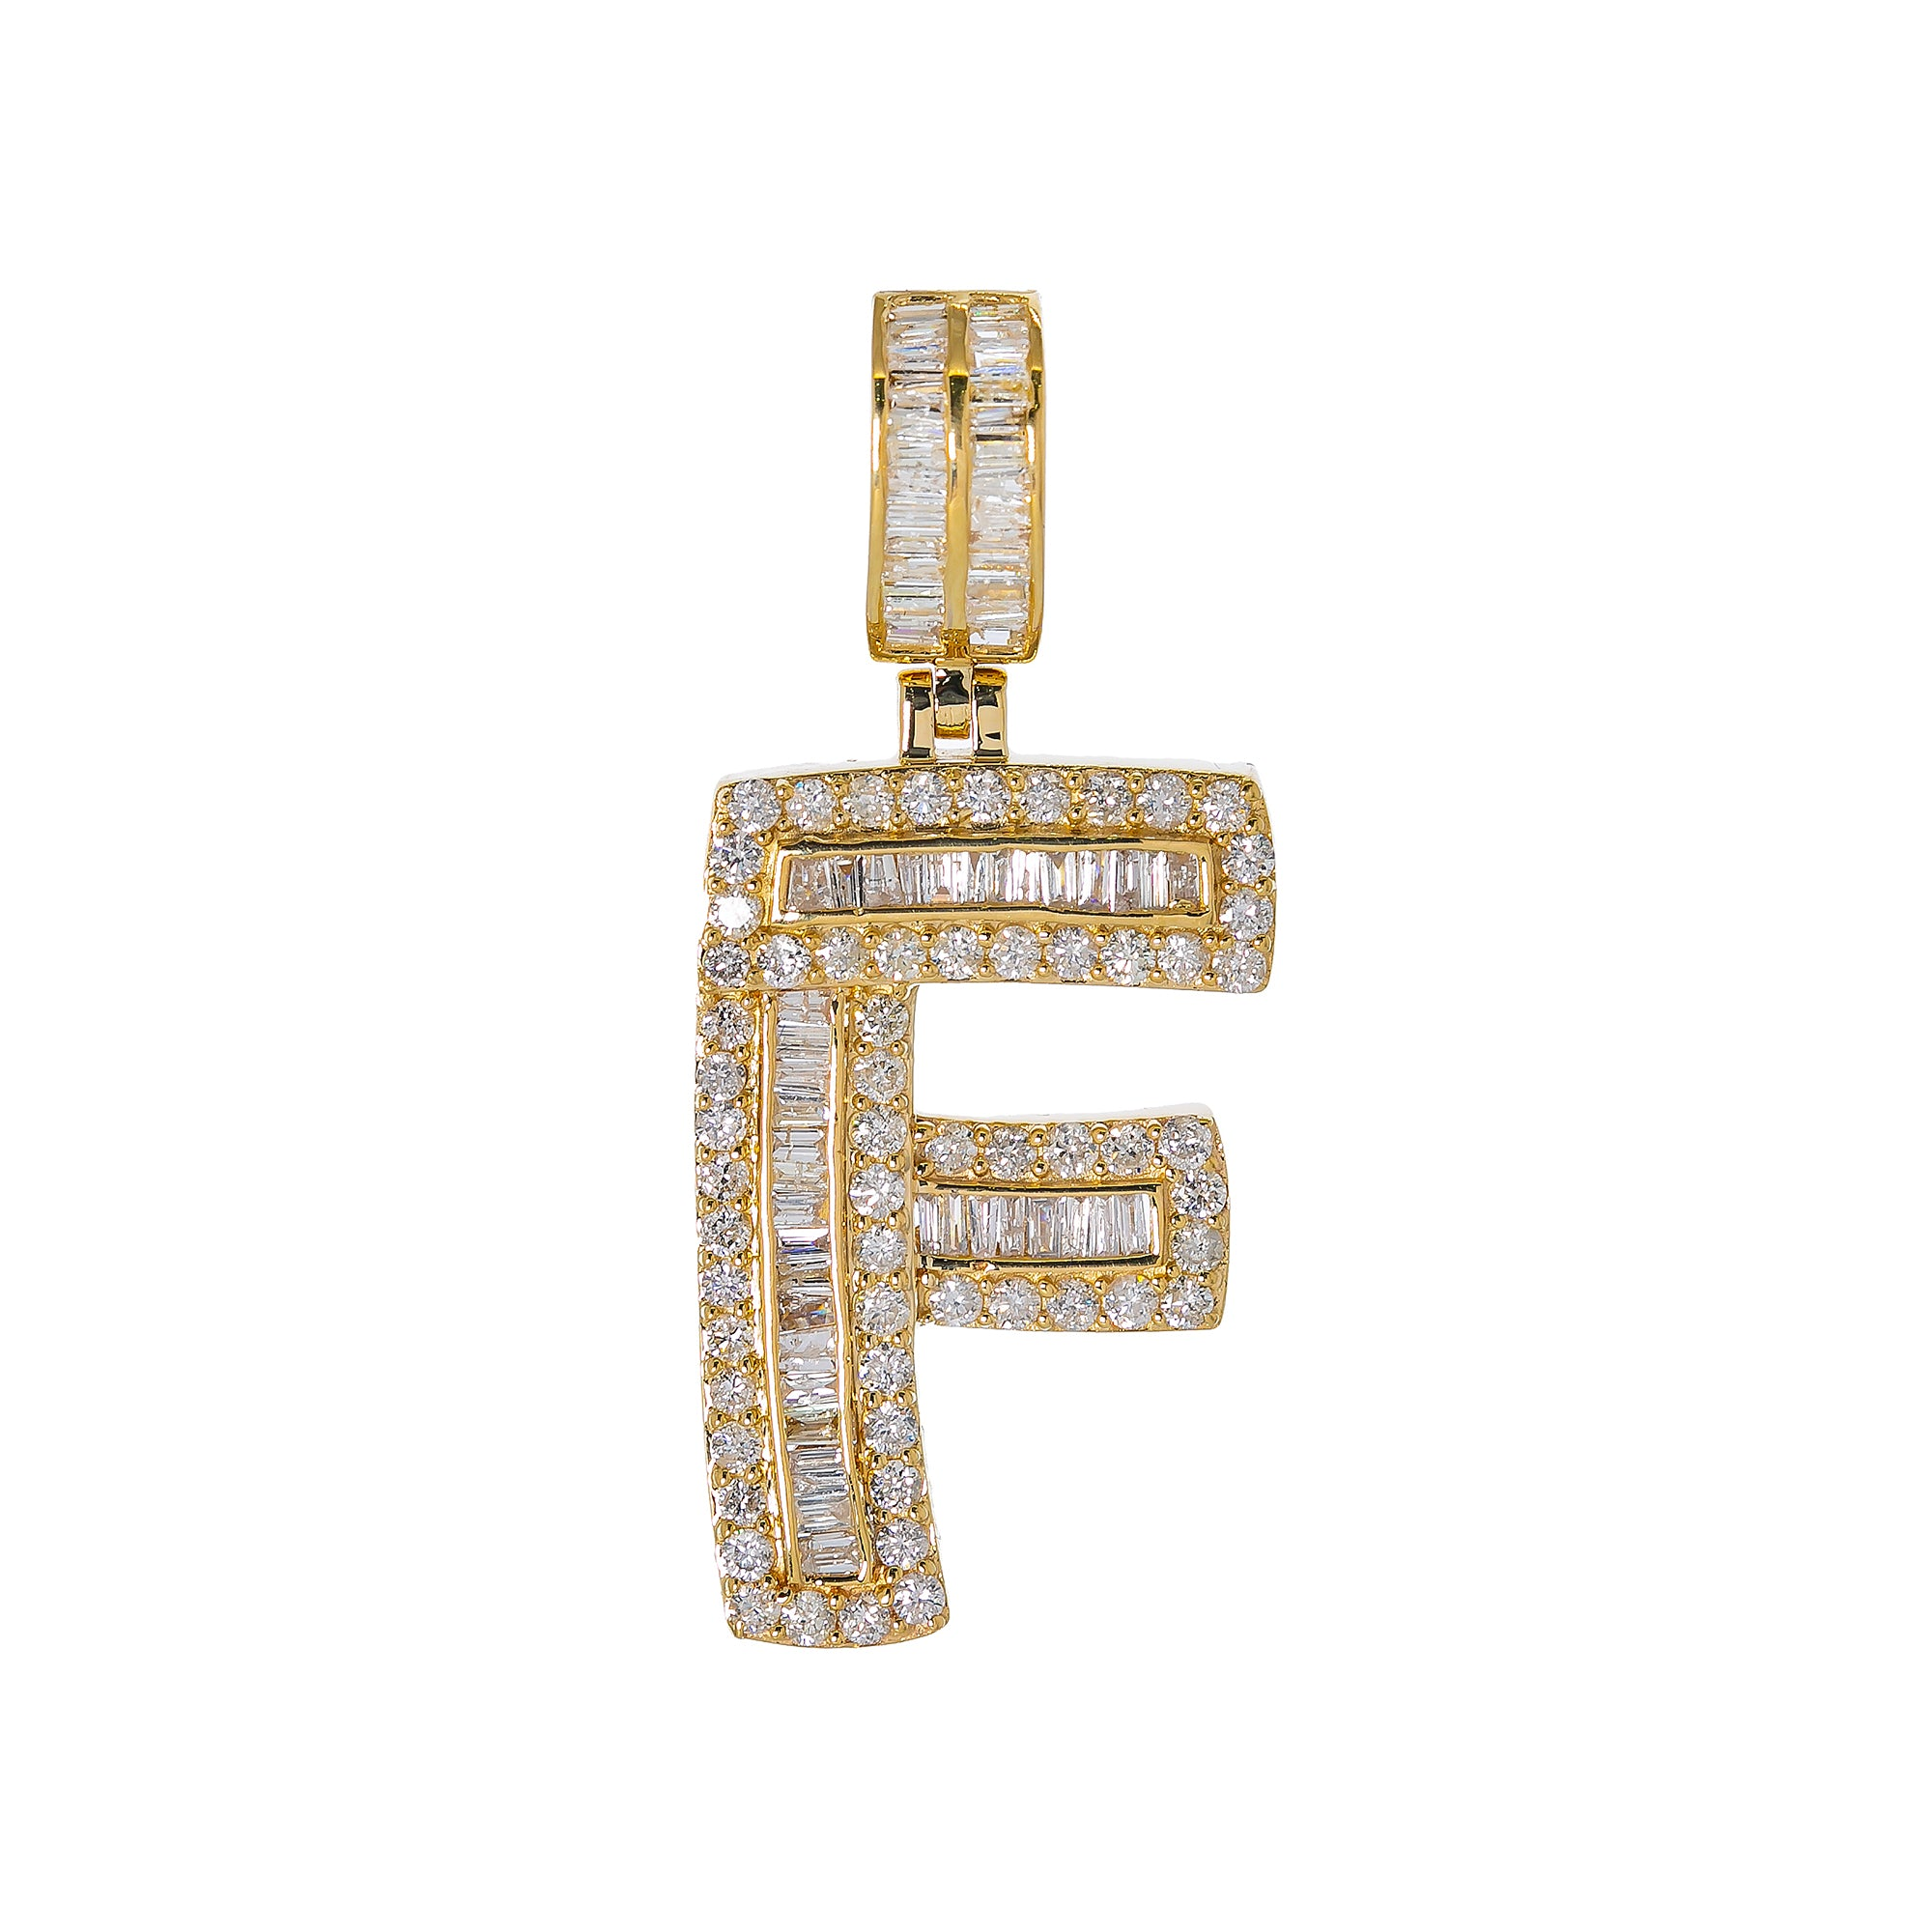 14K YELLOW GOLD UNISEX LETTER F WITH 1.97 CT DIAMONDS